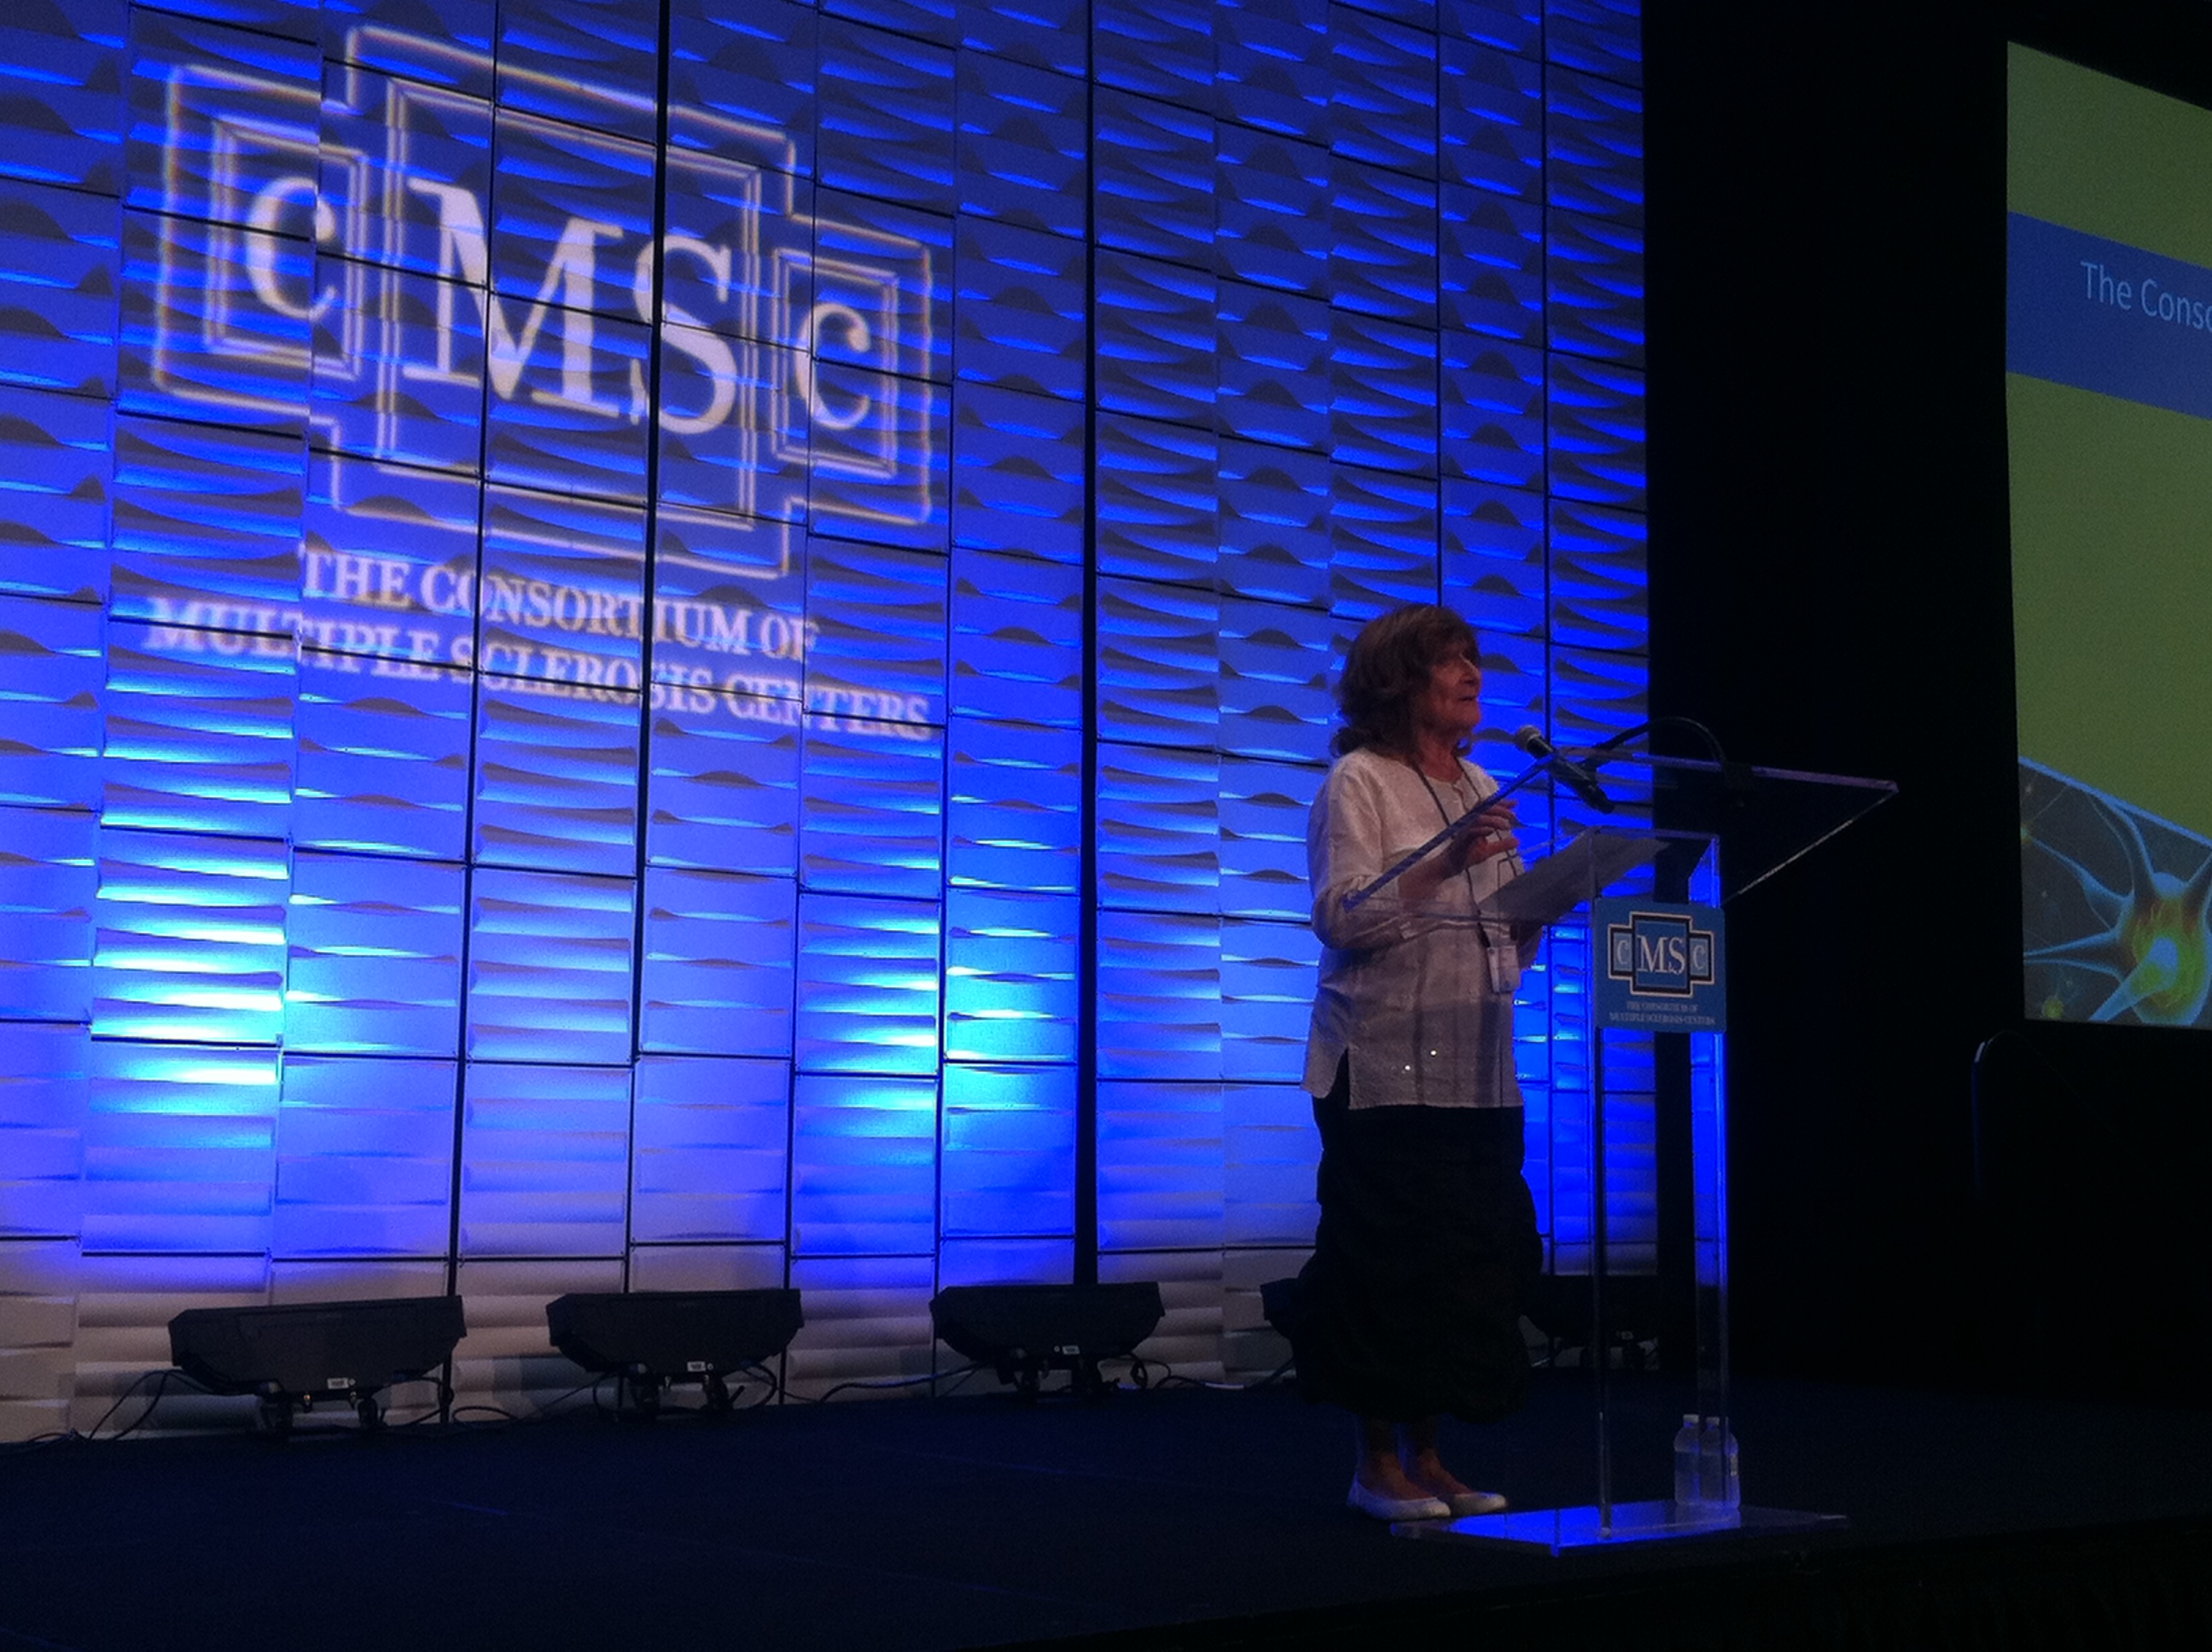 June Halper, CEO of The Consortium of Multiple Sclerosis Centers, welcoming attendees to the 29th CMSC Annual Meeting in Indianapolis